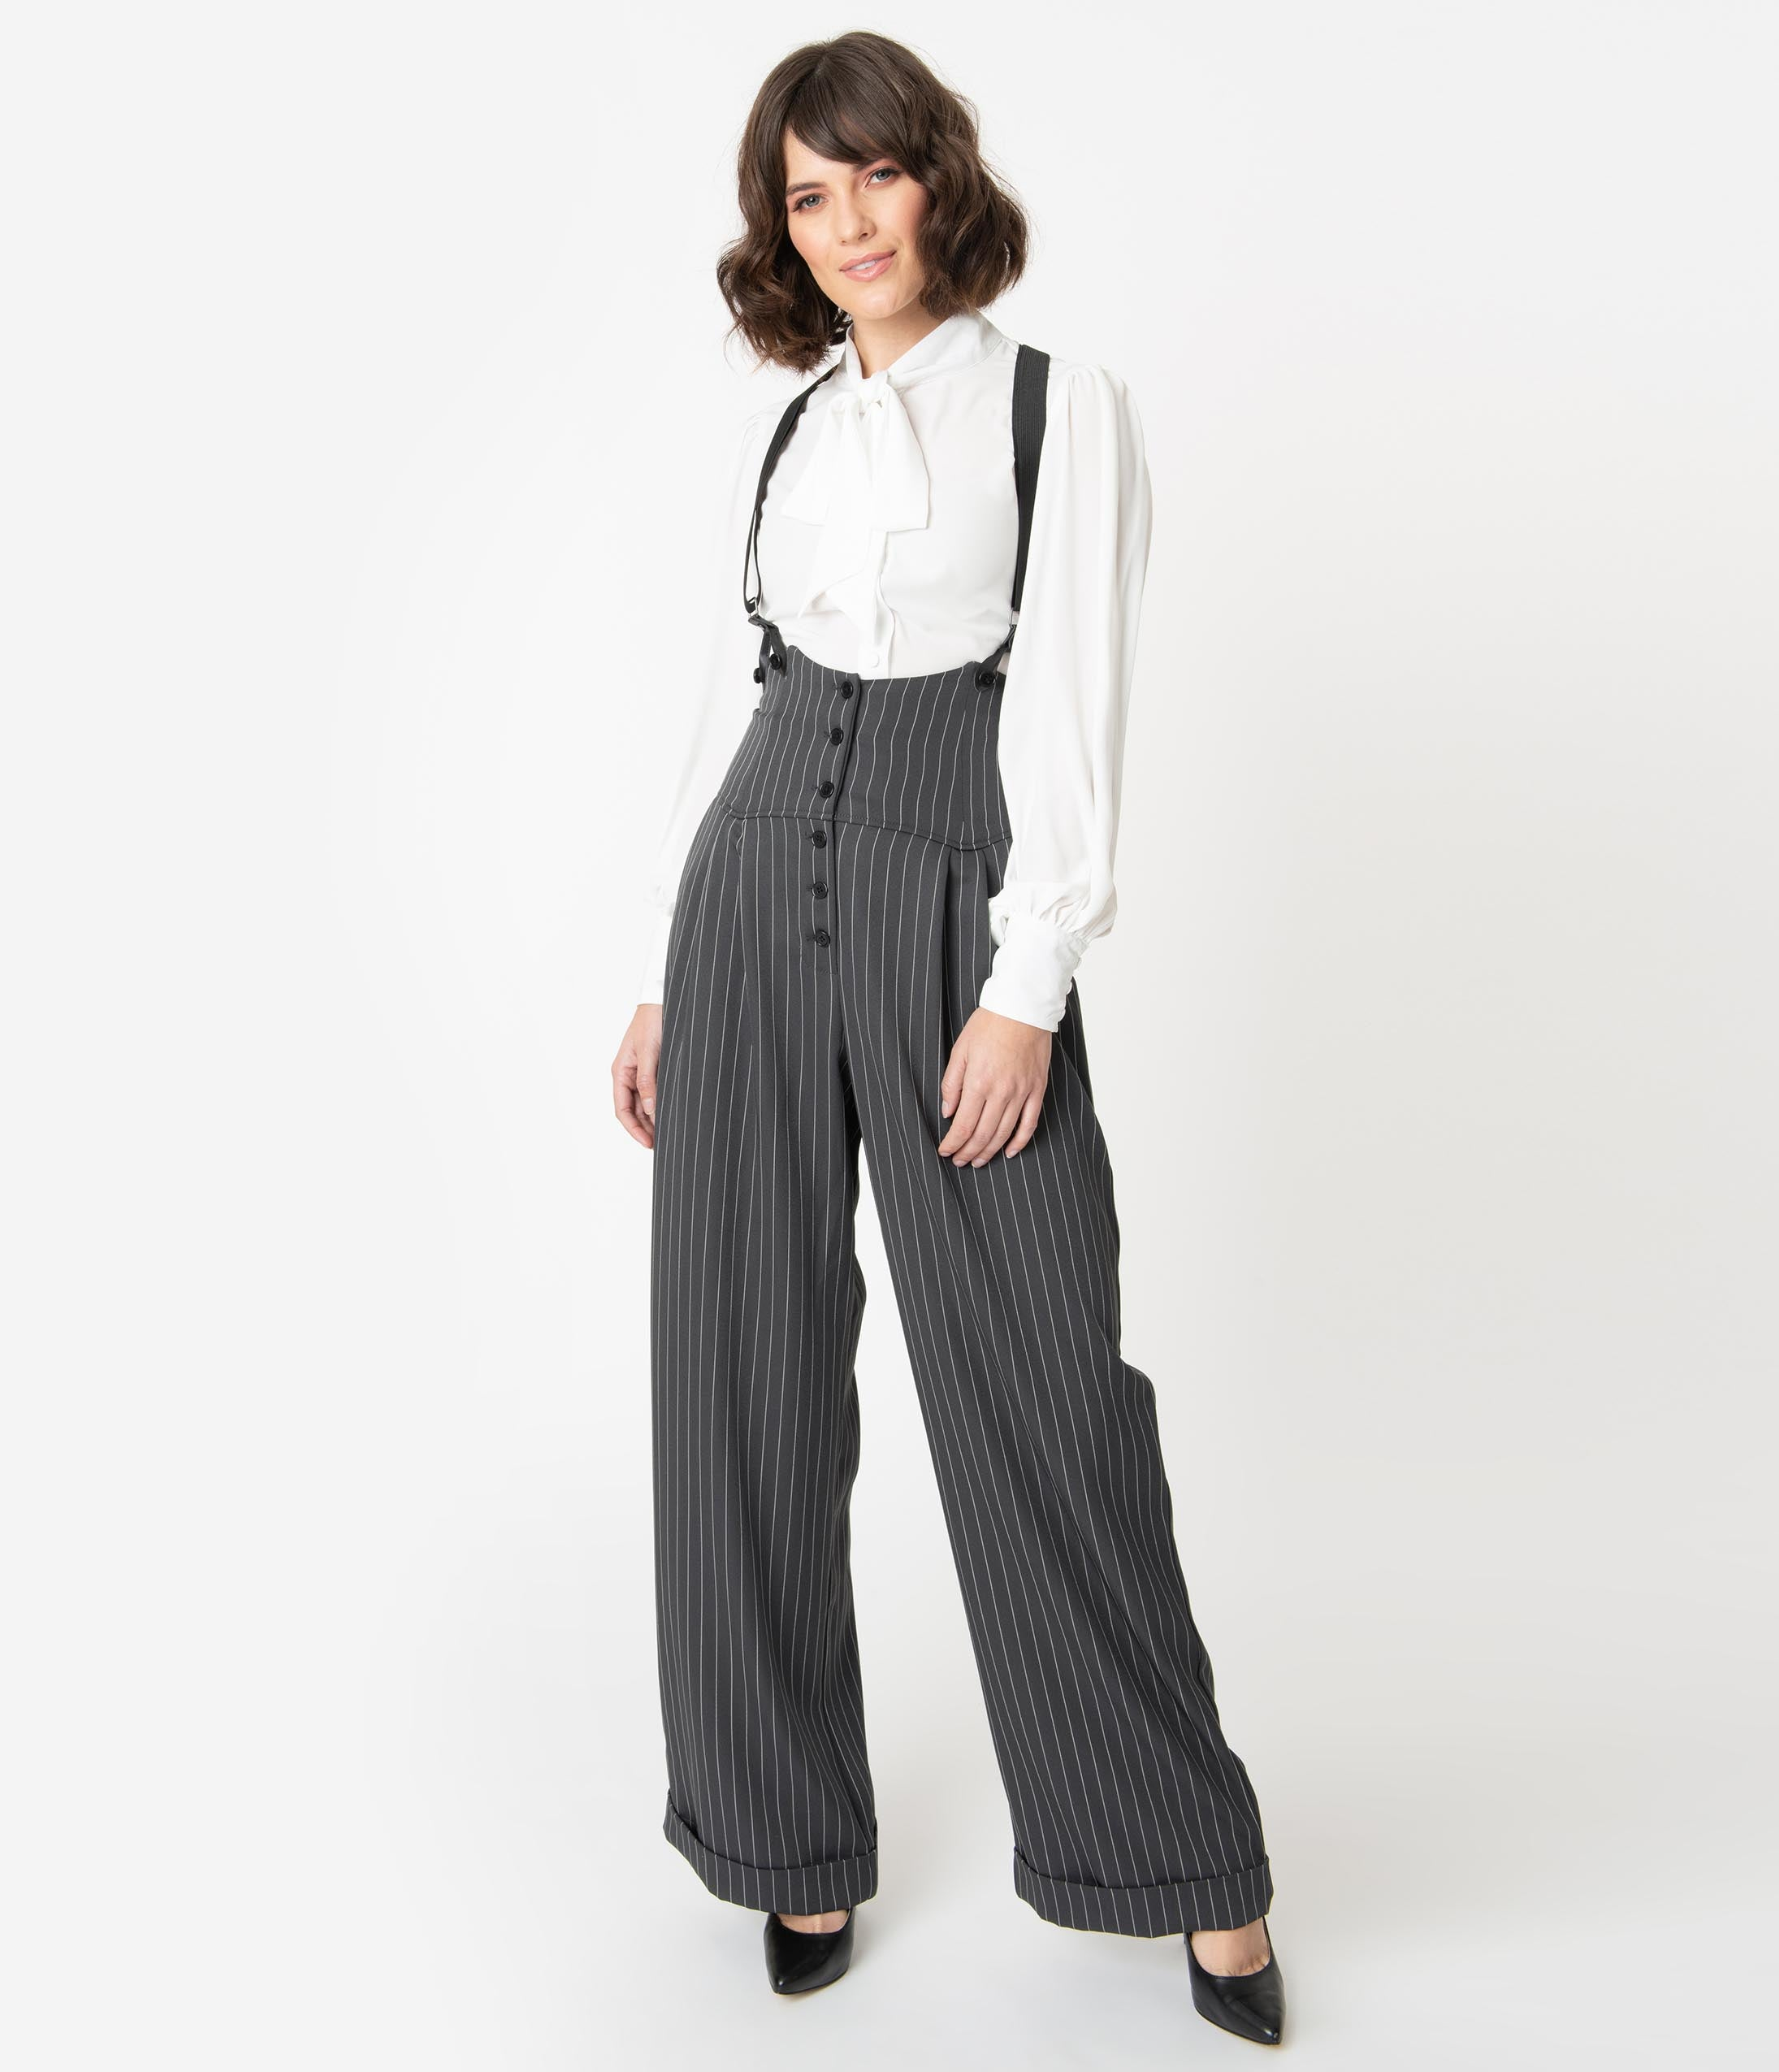 80s Jeans, Pants, Leggings Unique Vintage 1930S Charcoal Grey Pinstripe Thelma Suspender Pants $78.00 AT vintagedancer.com